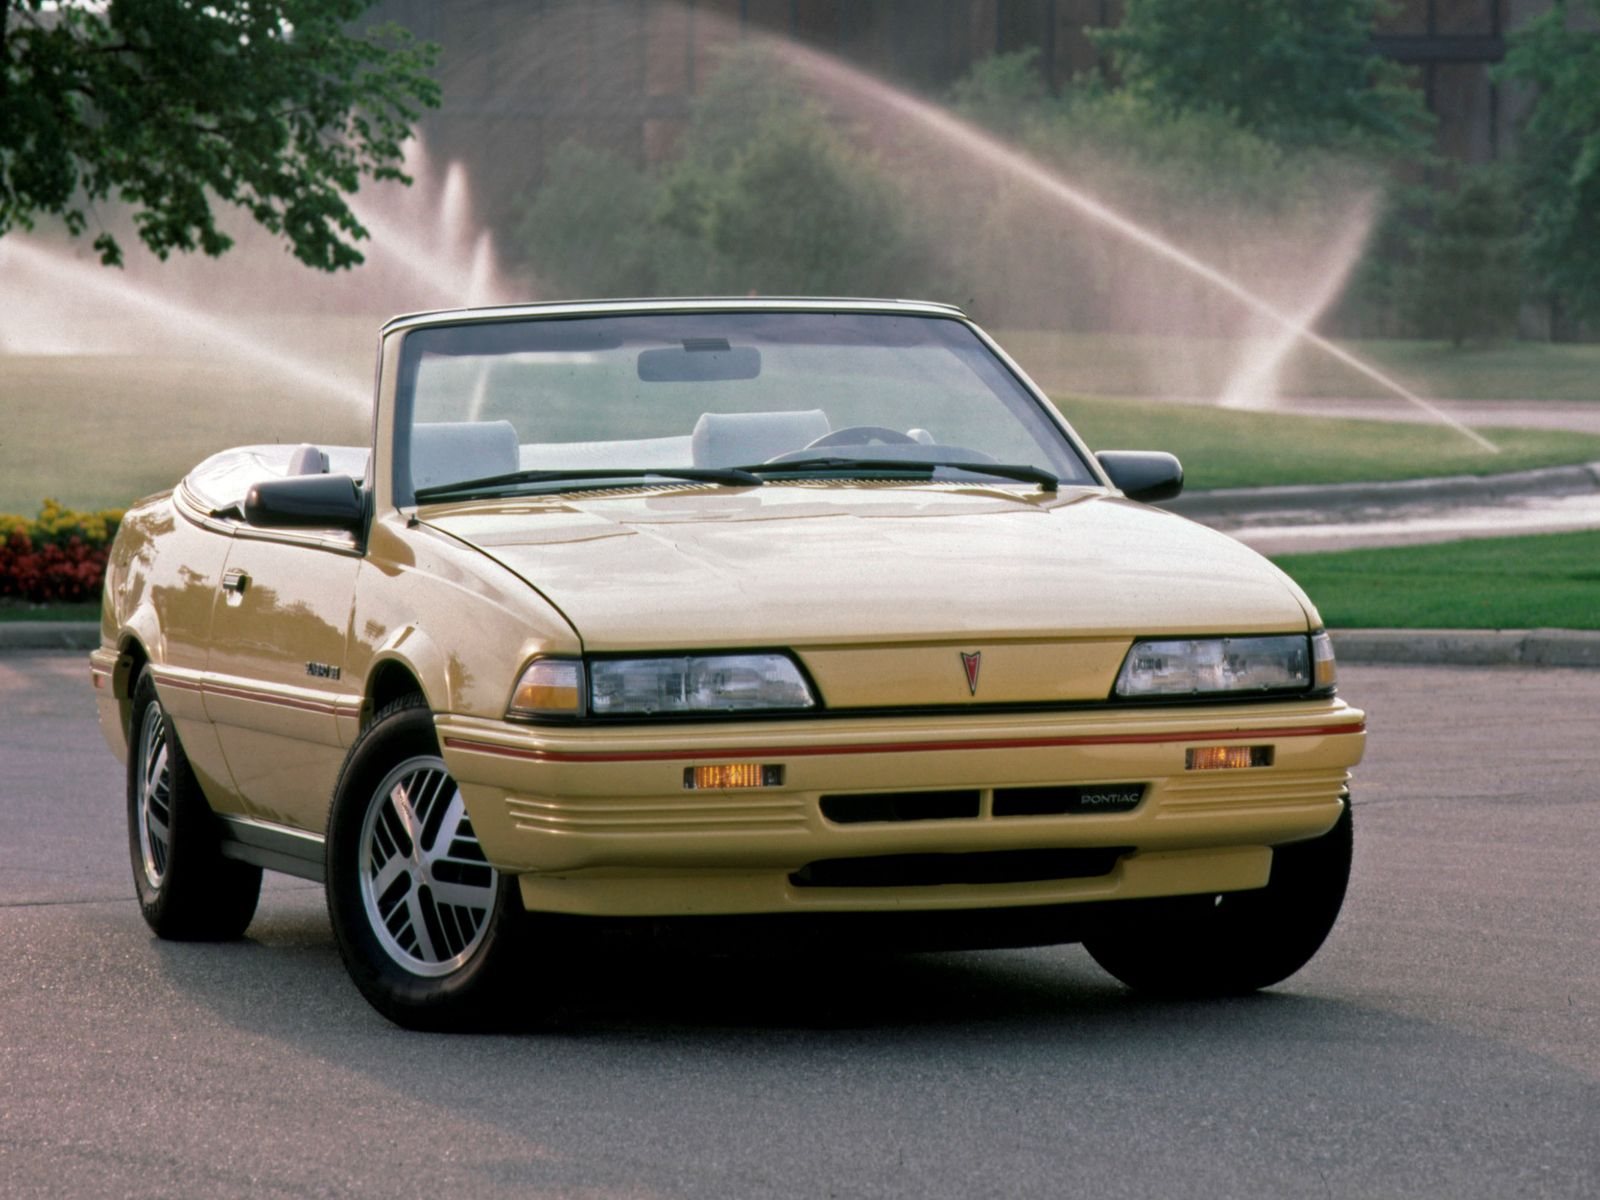 Pontiac sunbird convertible at http www windblox com windscreen winddeflector pontiacsundird pontiac sunbird windscreen pinterest convertible